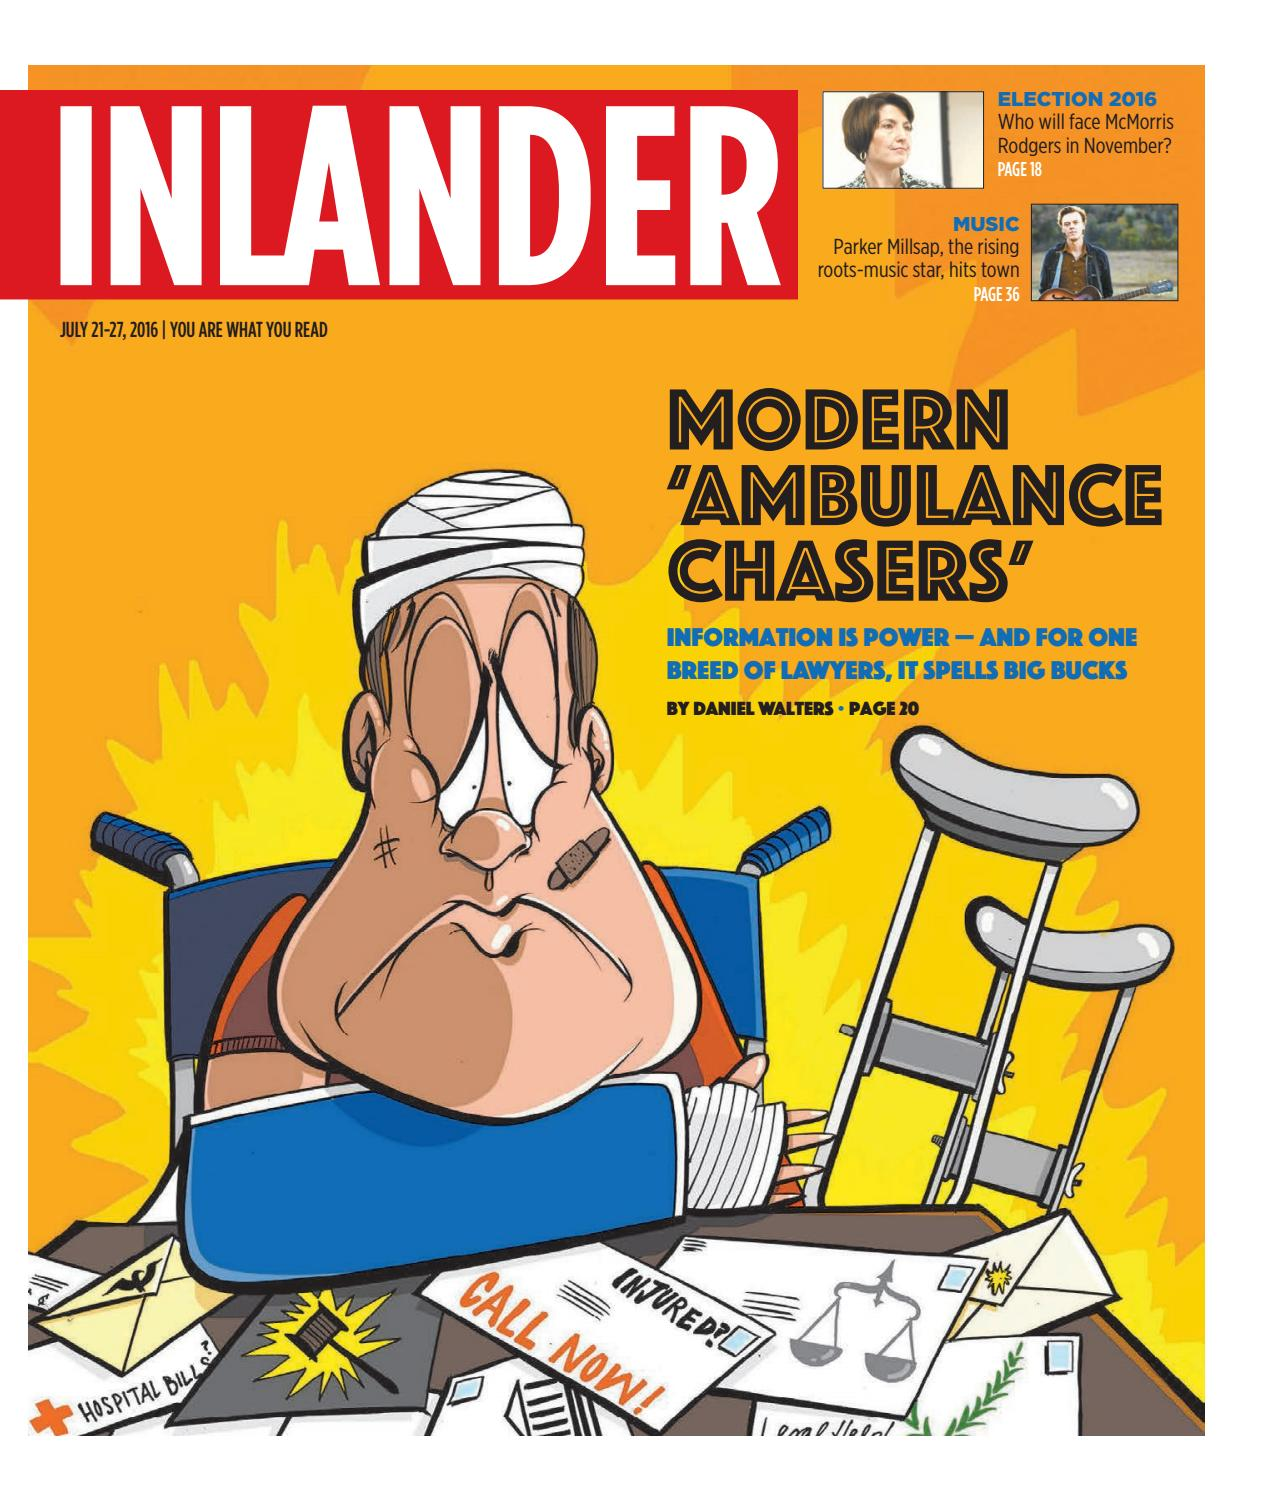 Inlander 07/21/2016 by The Inlander - issuu